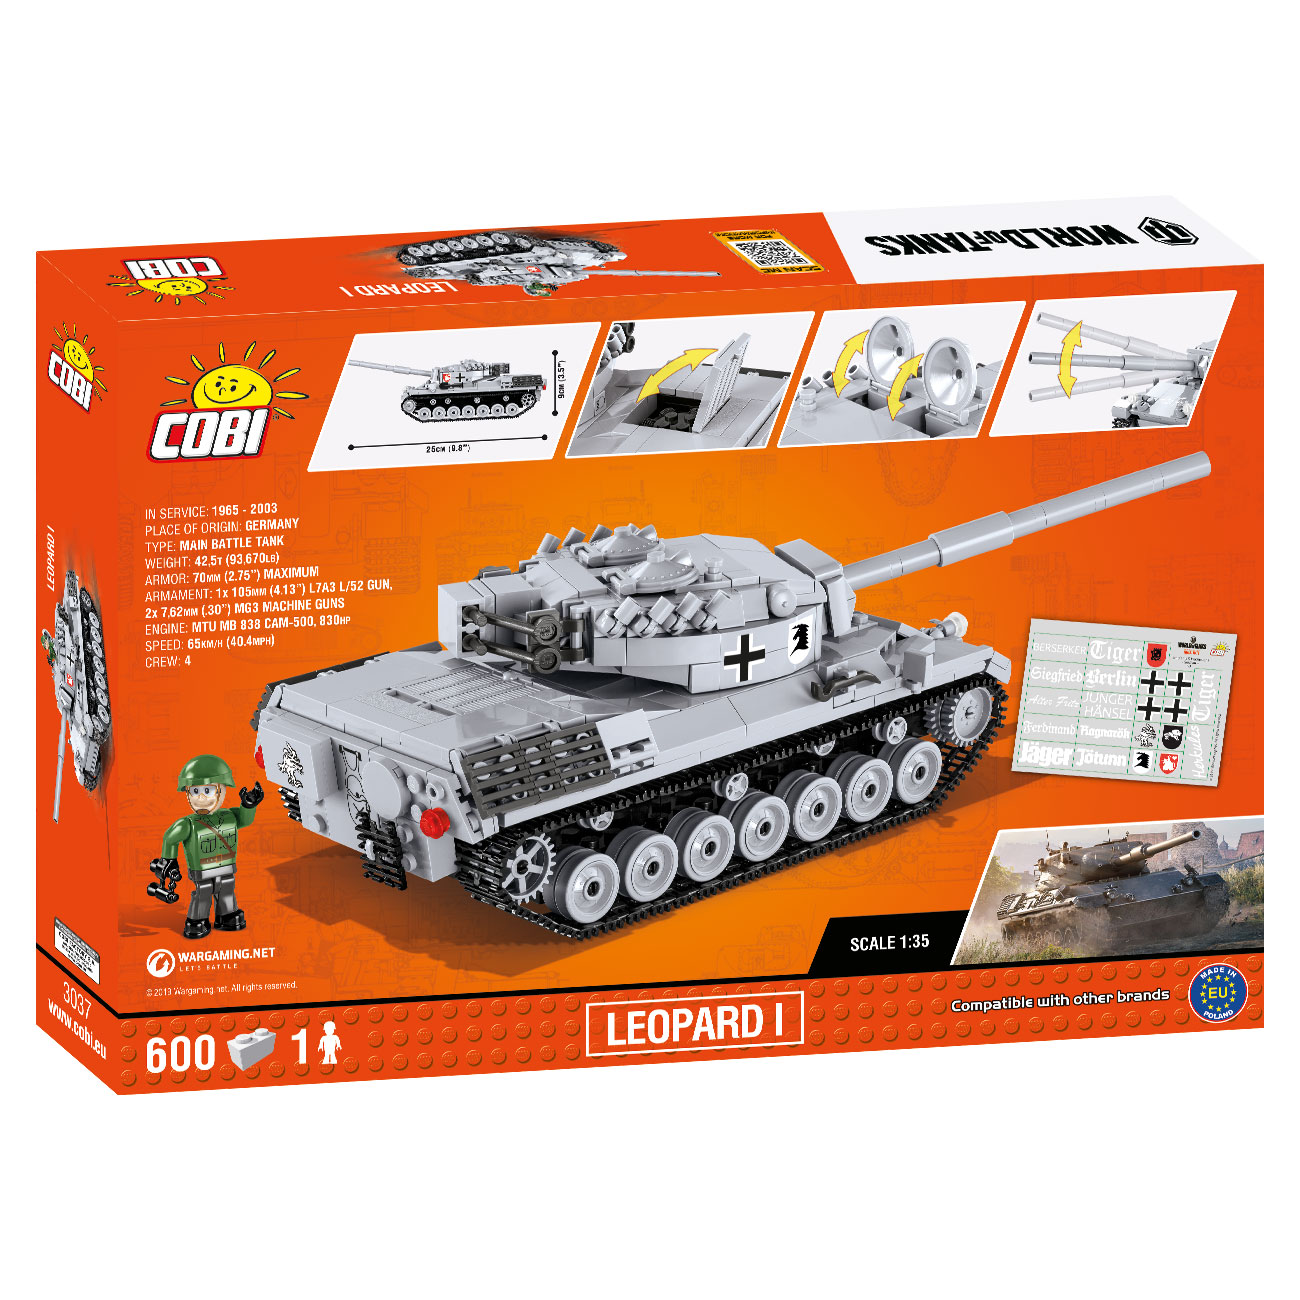 Cobi World Of Tanks Small Army Bausatz Panzer Leopard I 600 Teile 3037 3